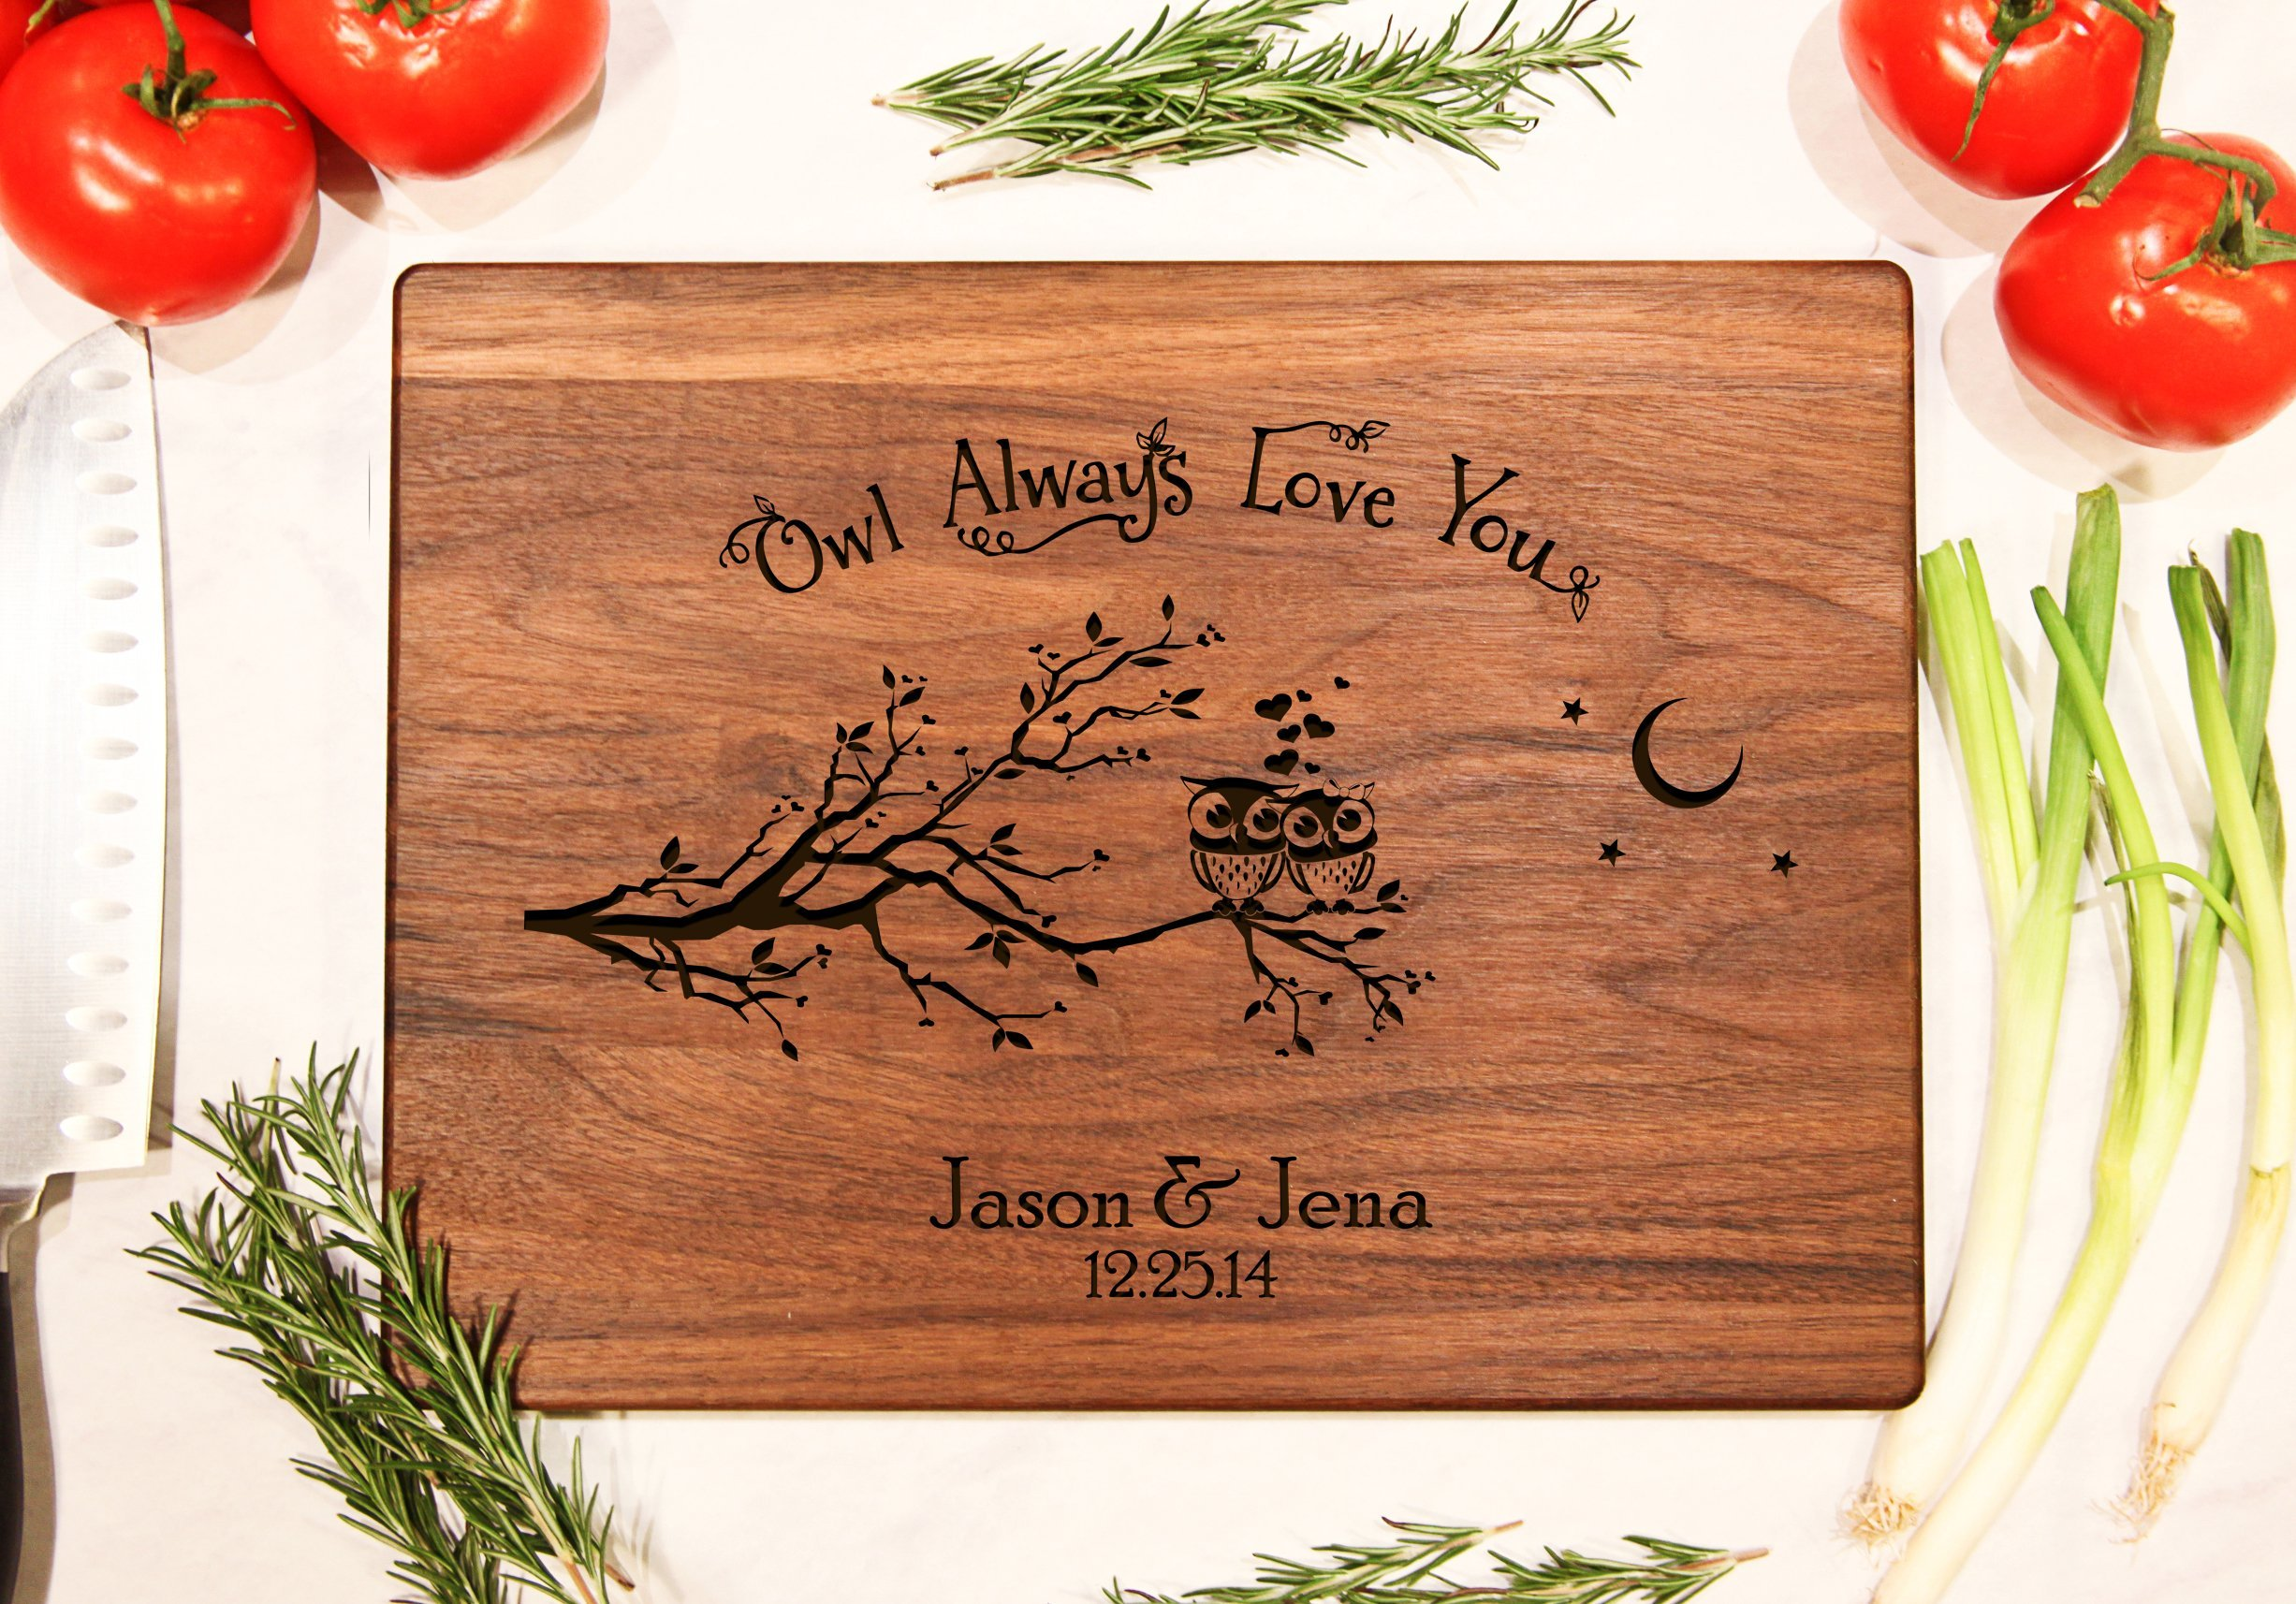 Personalized Cutting Board Engraved Chopping Block - OWL Always Love You